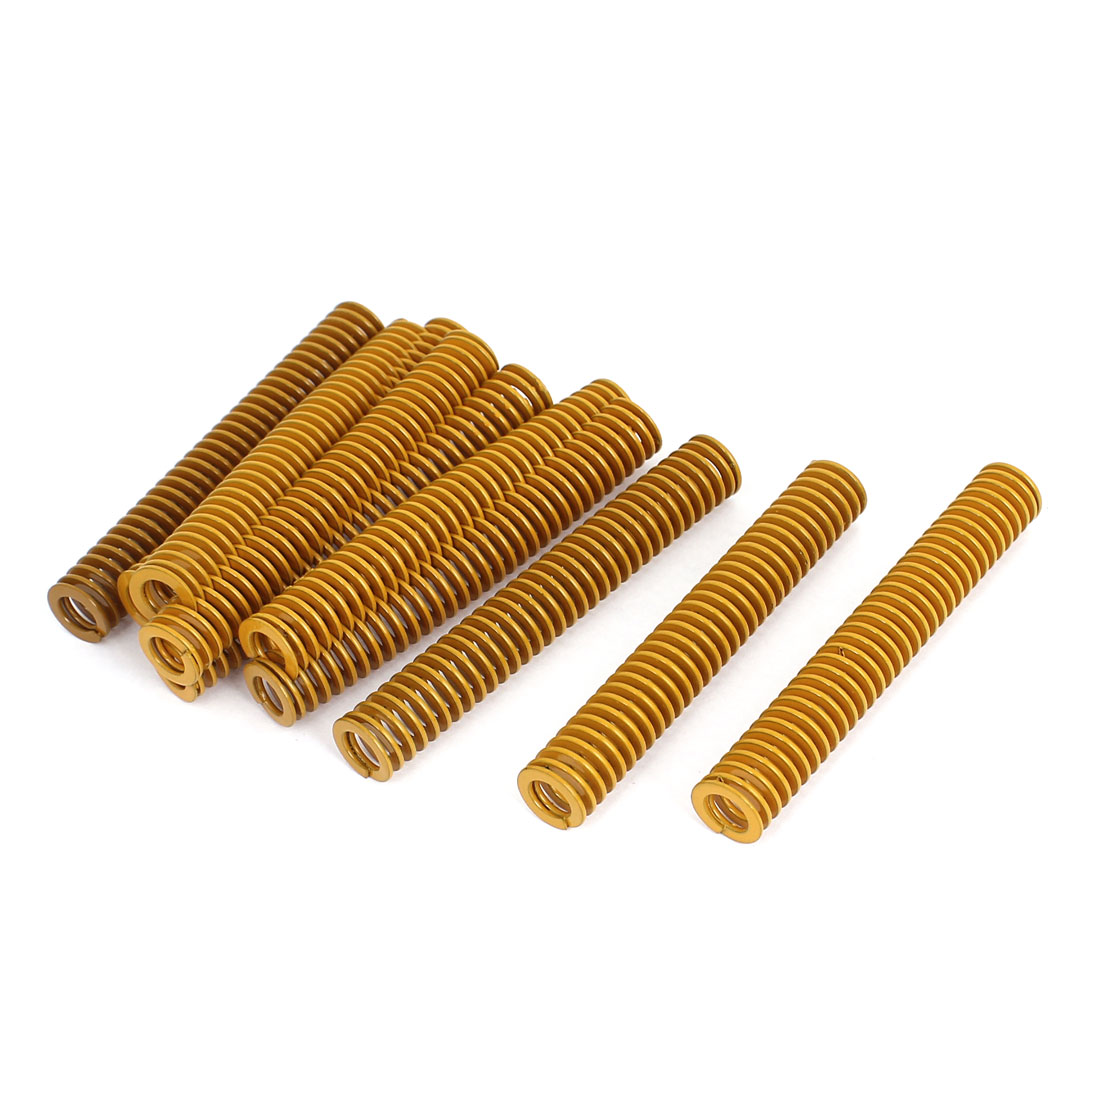 12mm OD 80mm Long Light Load Stamping Compression Mold Die Spring Yellow 10pcs